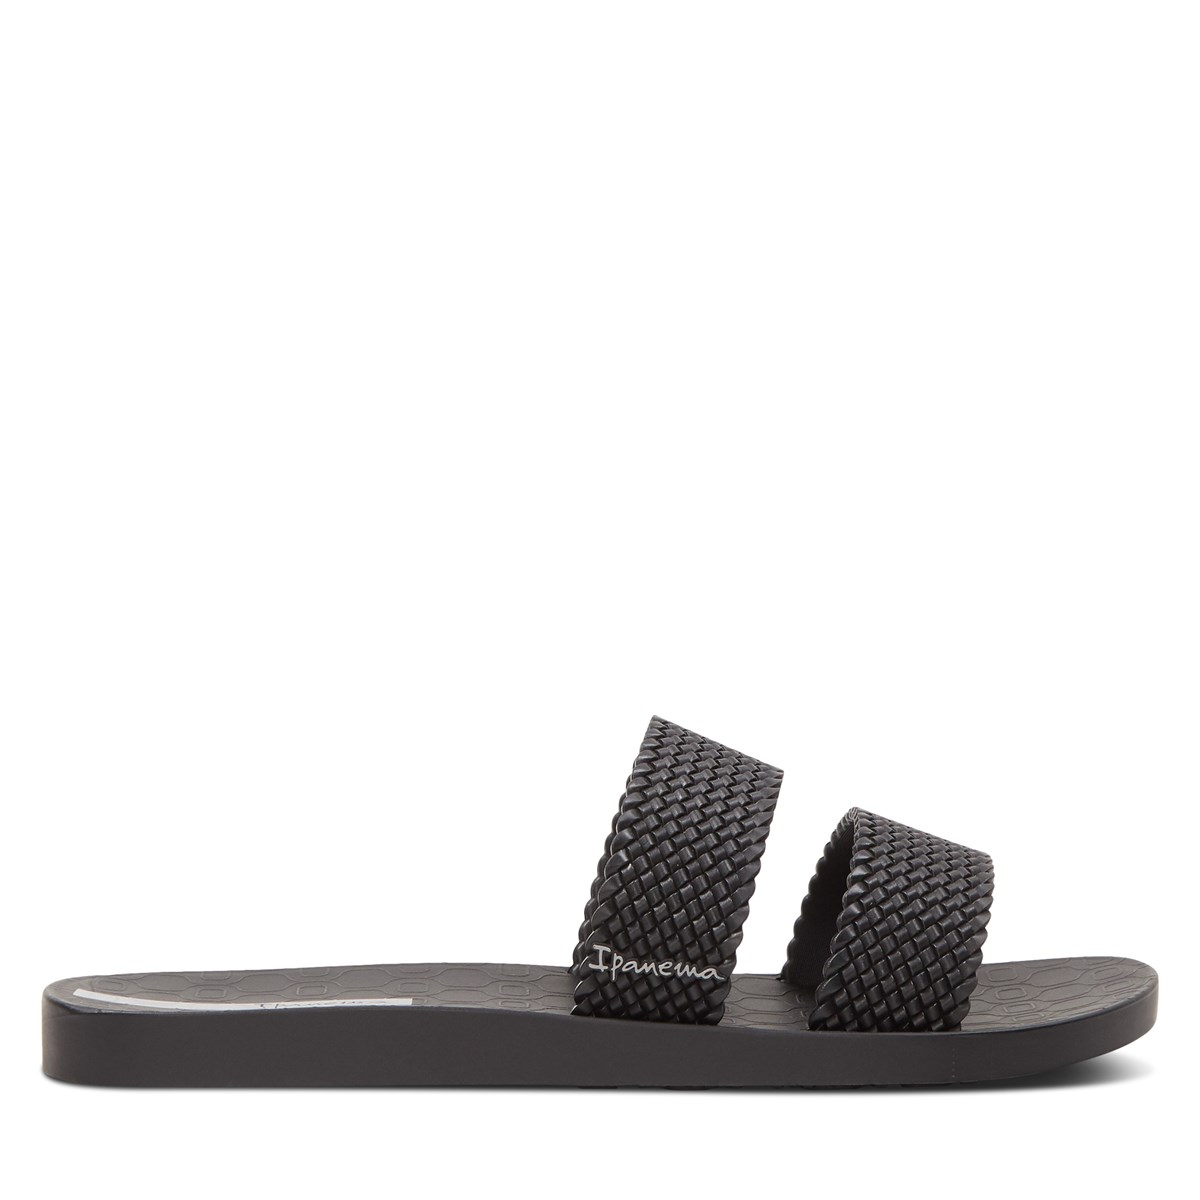 Women's City Slides in Black